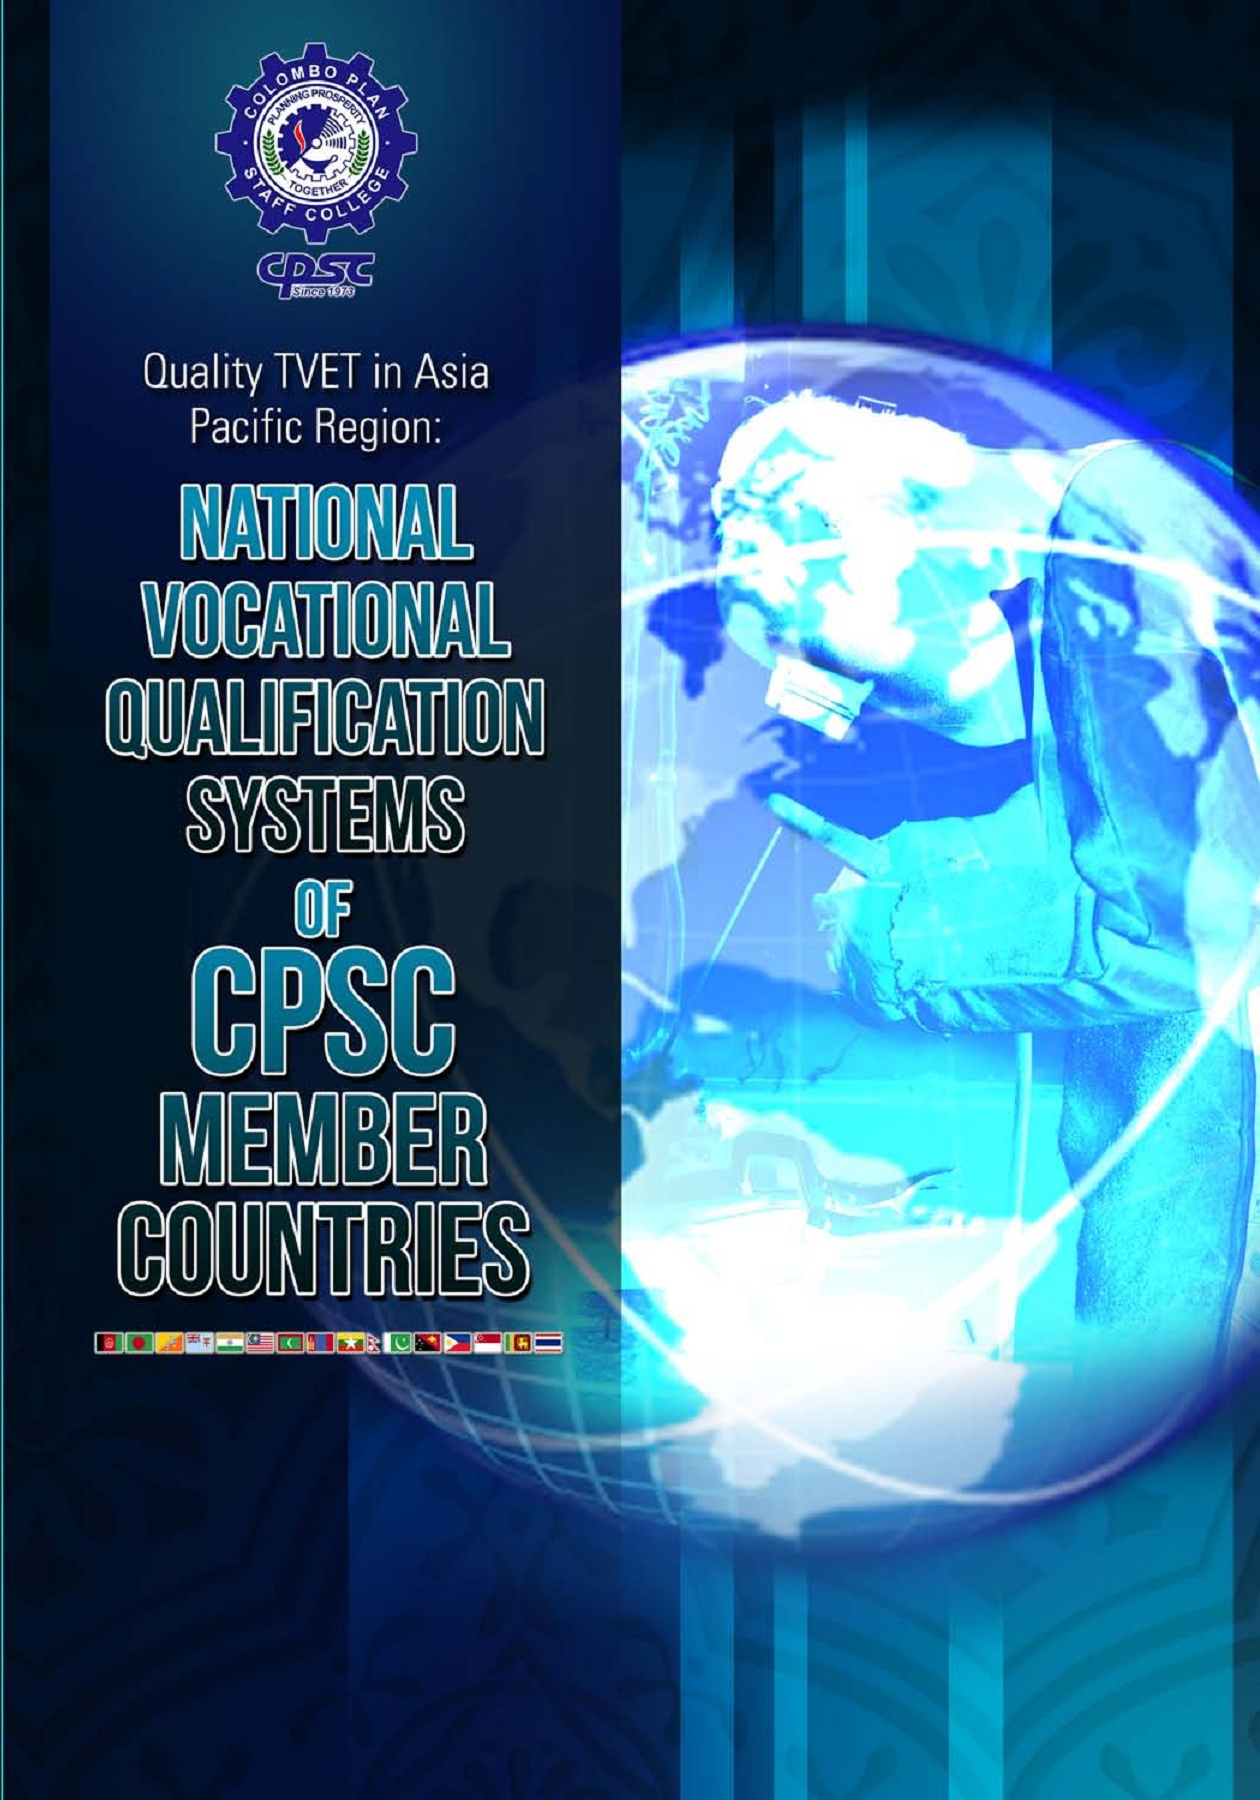 Quality Tvet In Asia Pacific Region National Vocational Qualification Systems Of Cpsc Member Countries Pages 151 188 Text Version Anyflip